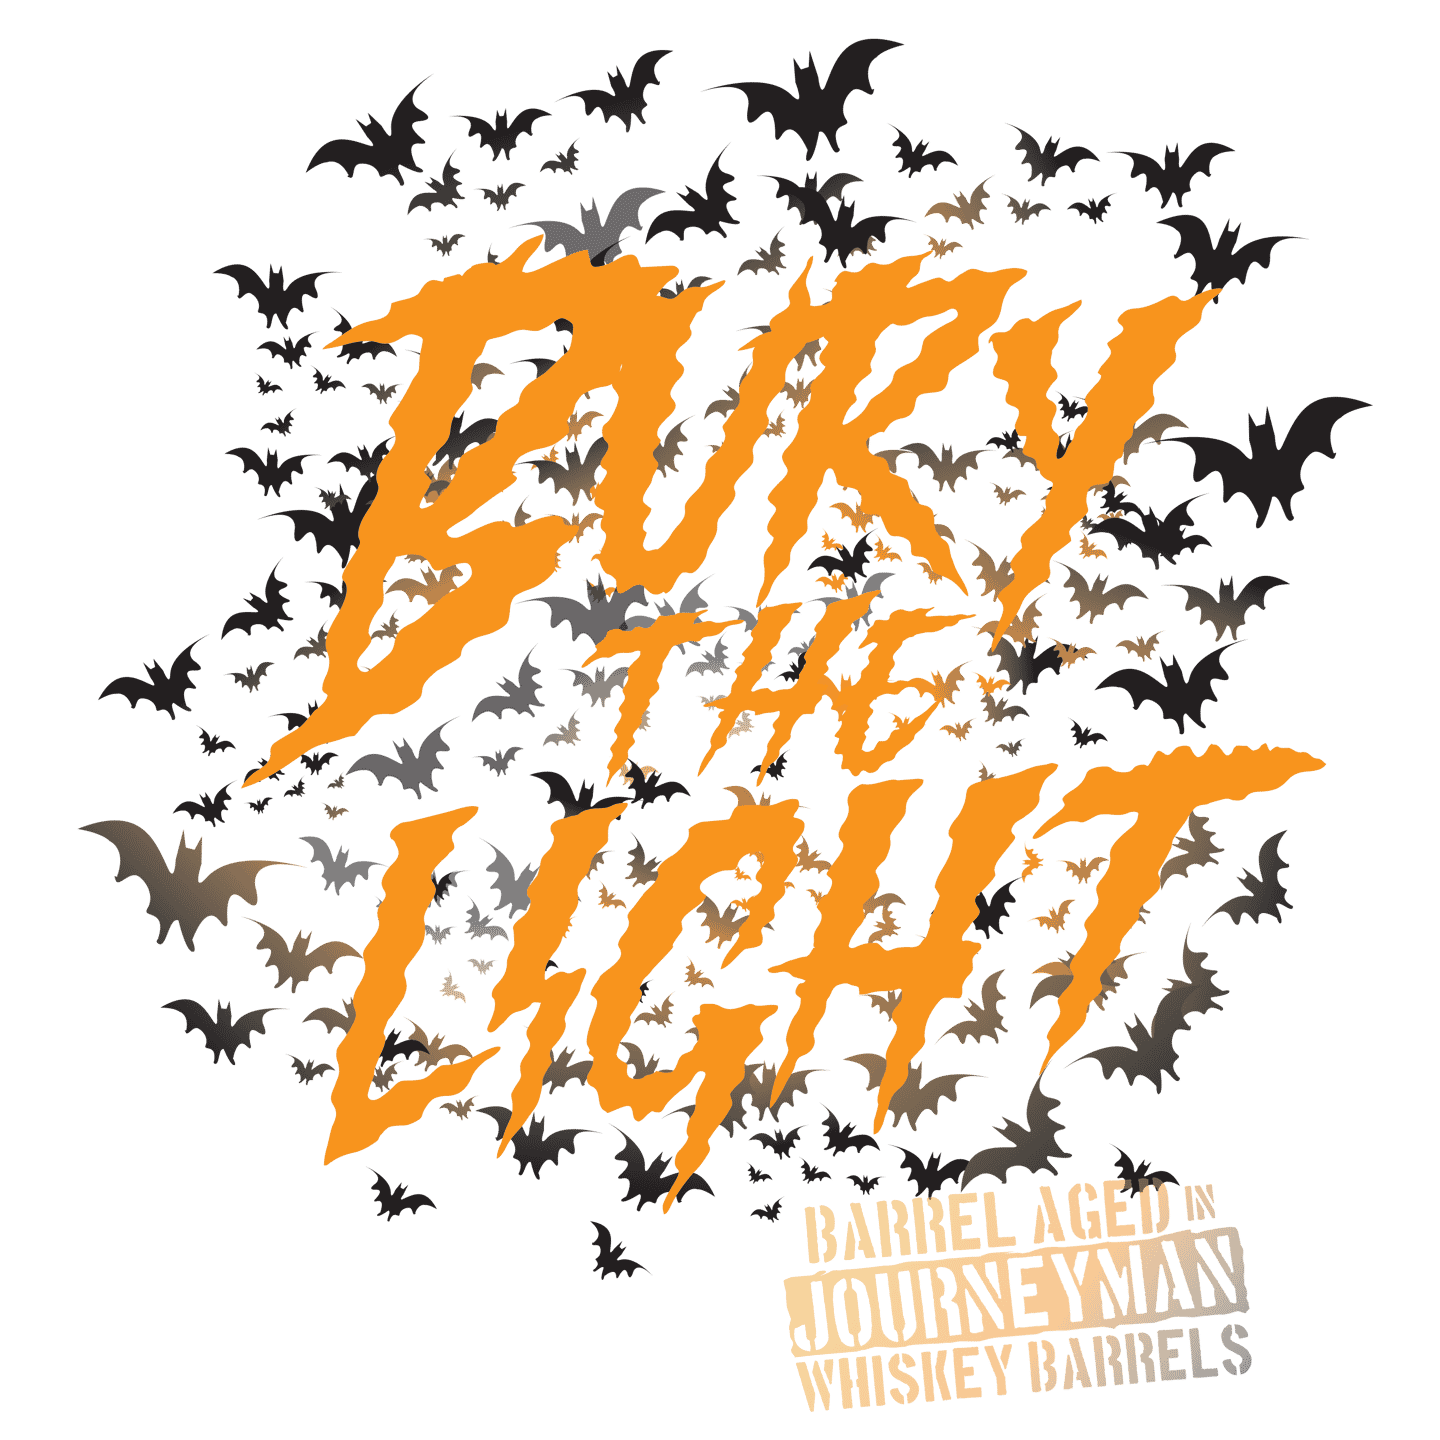 Bury the Light Barrel Aged